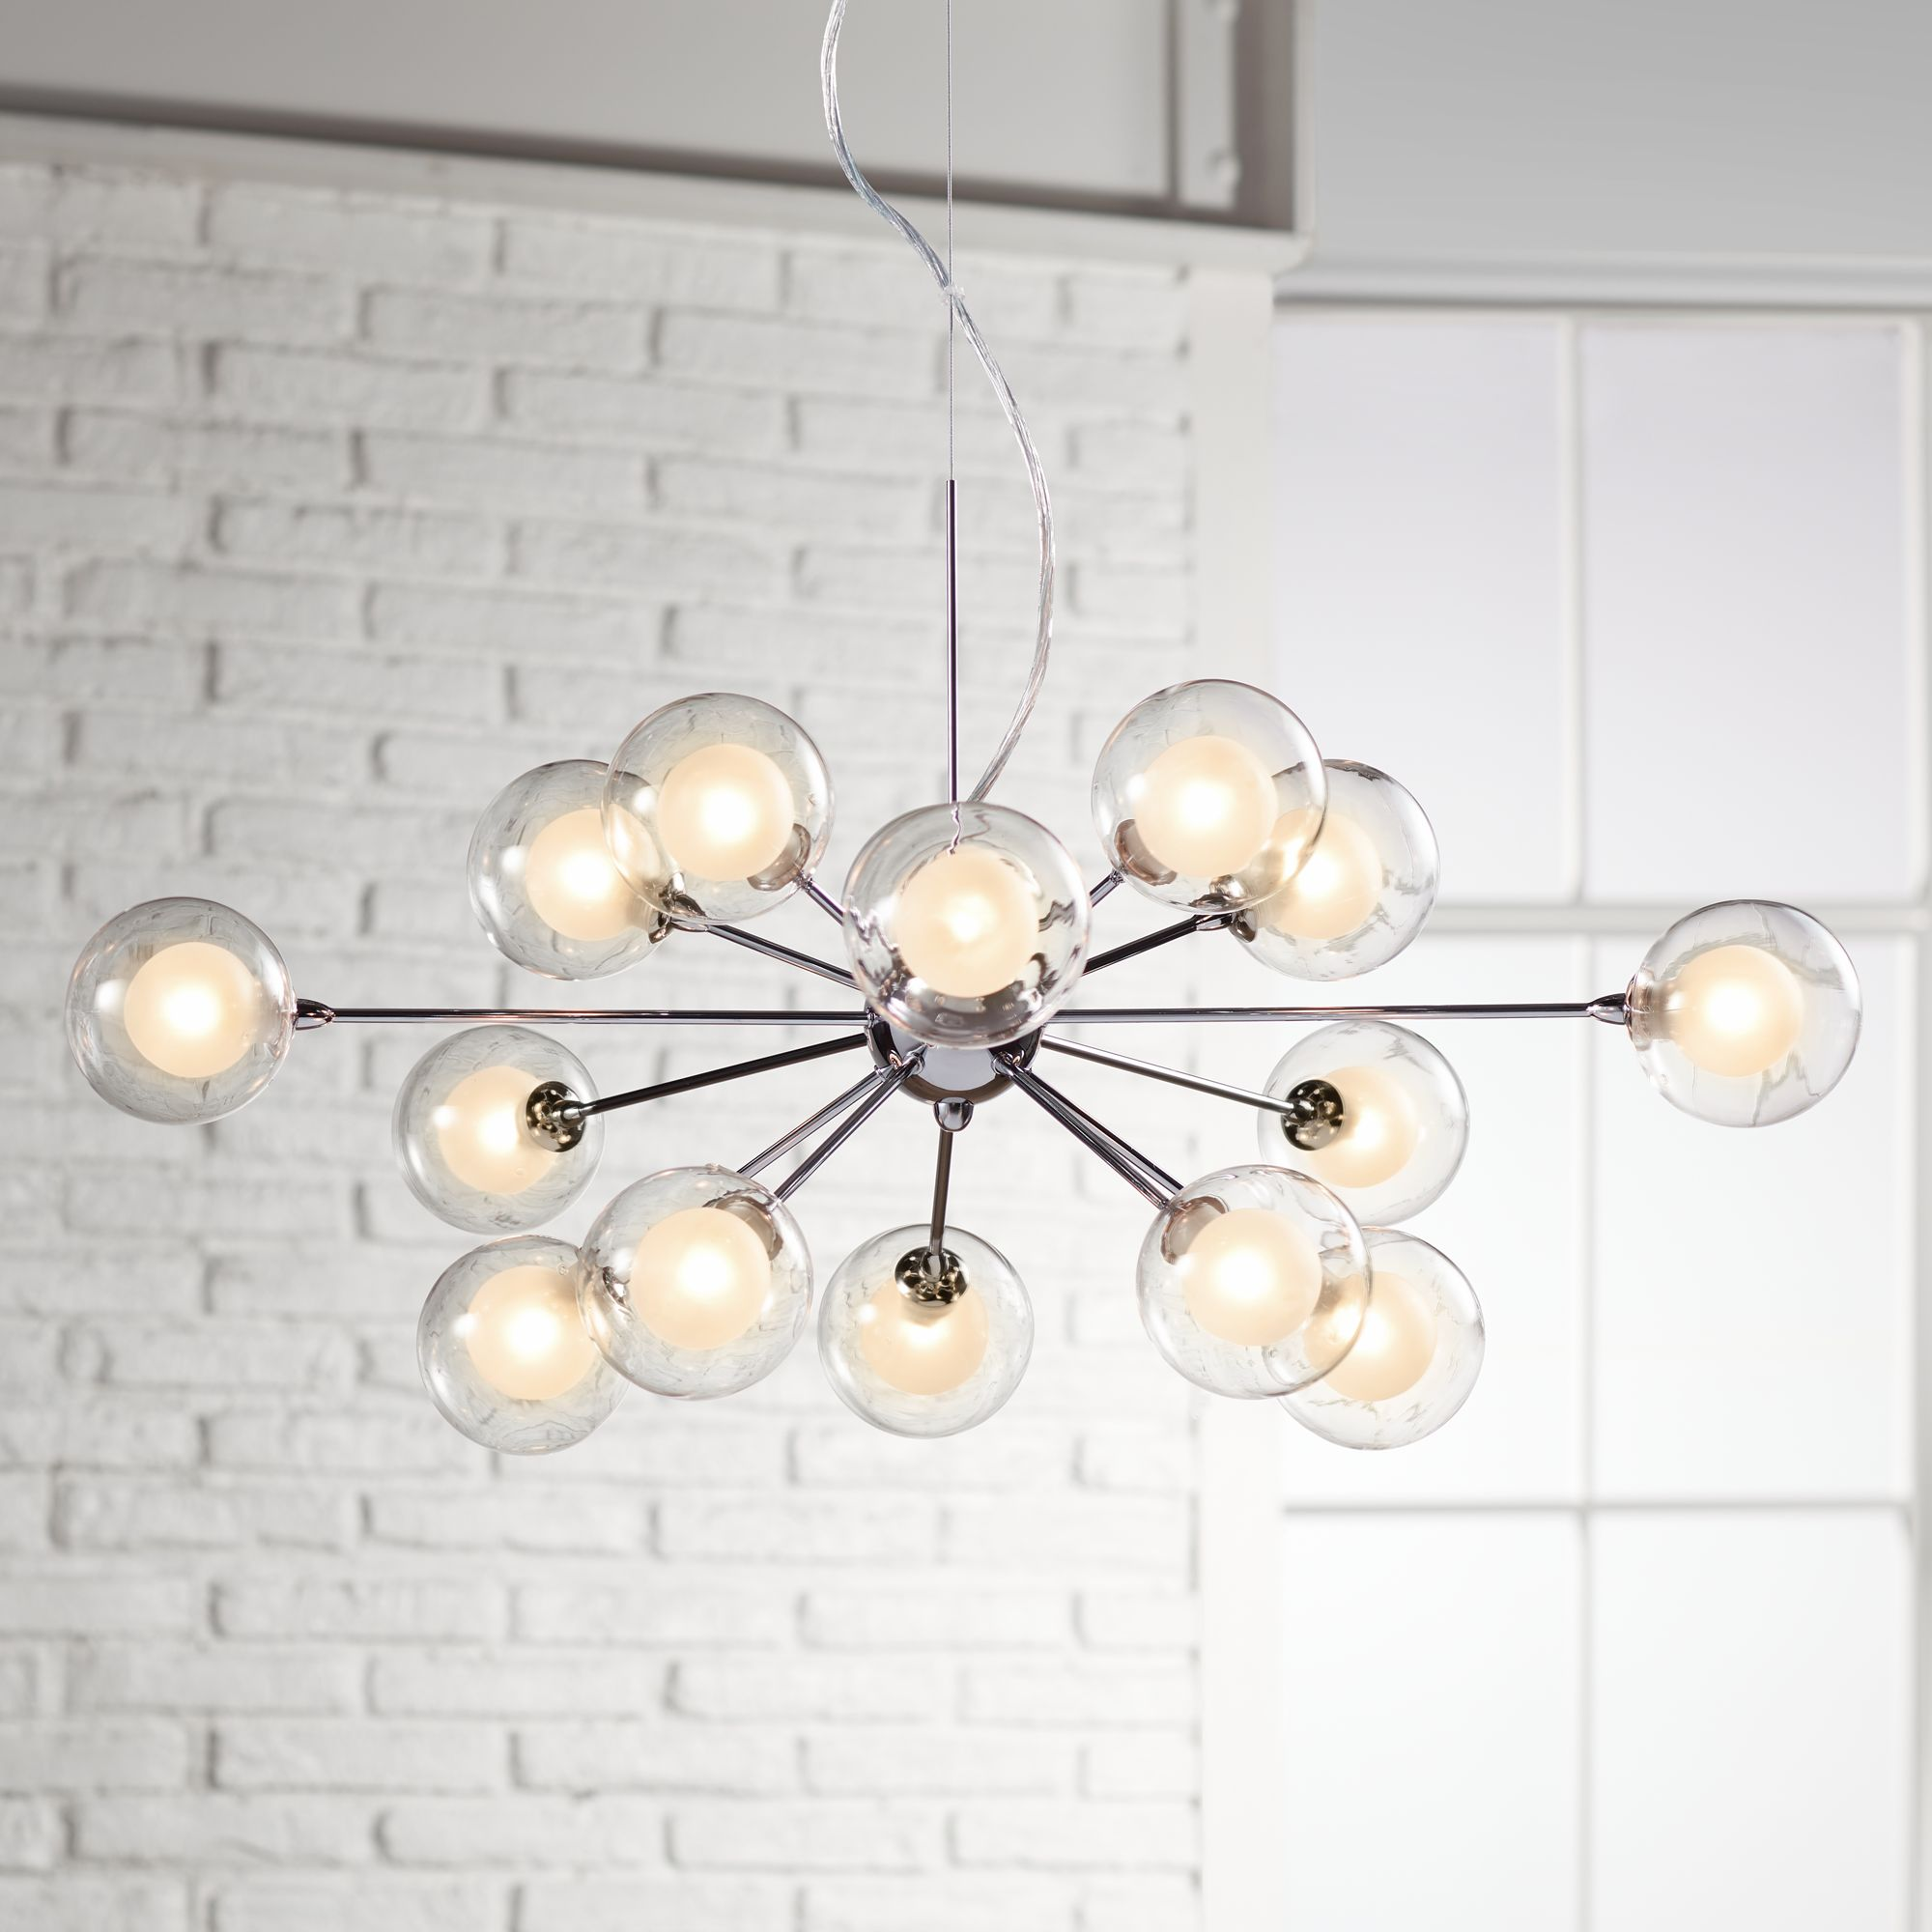 Possini Euro Design Glass Sphere 15 Light Pendant Chandelier Design